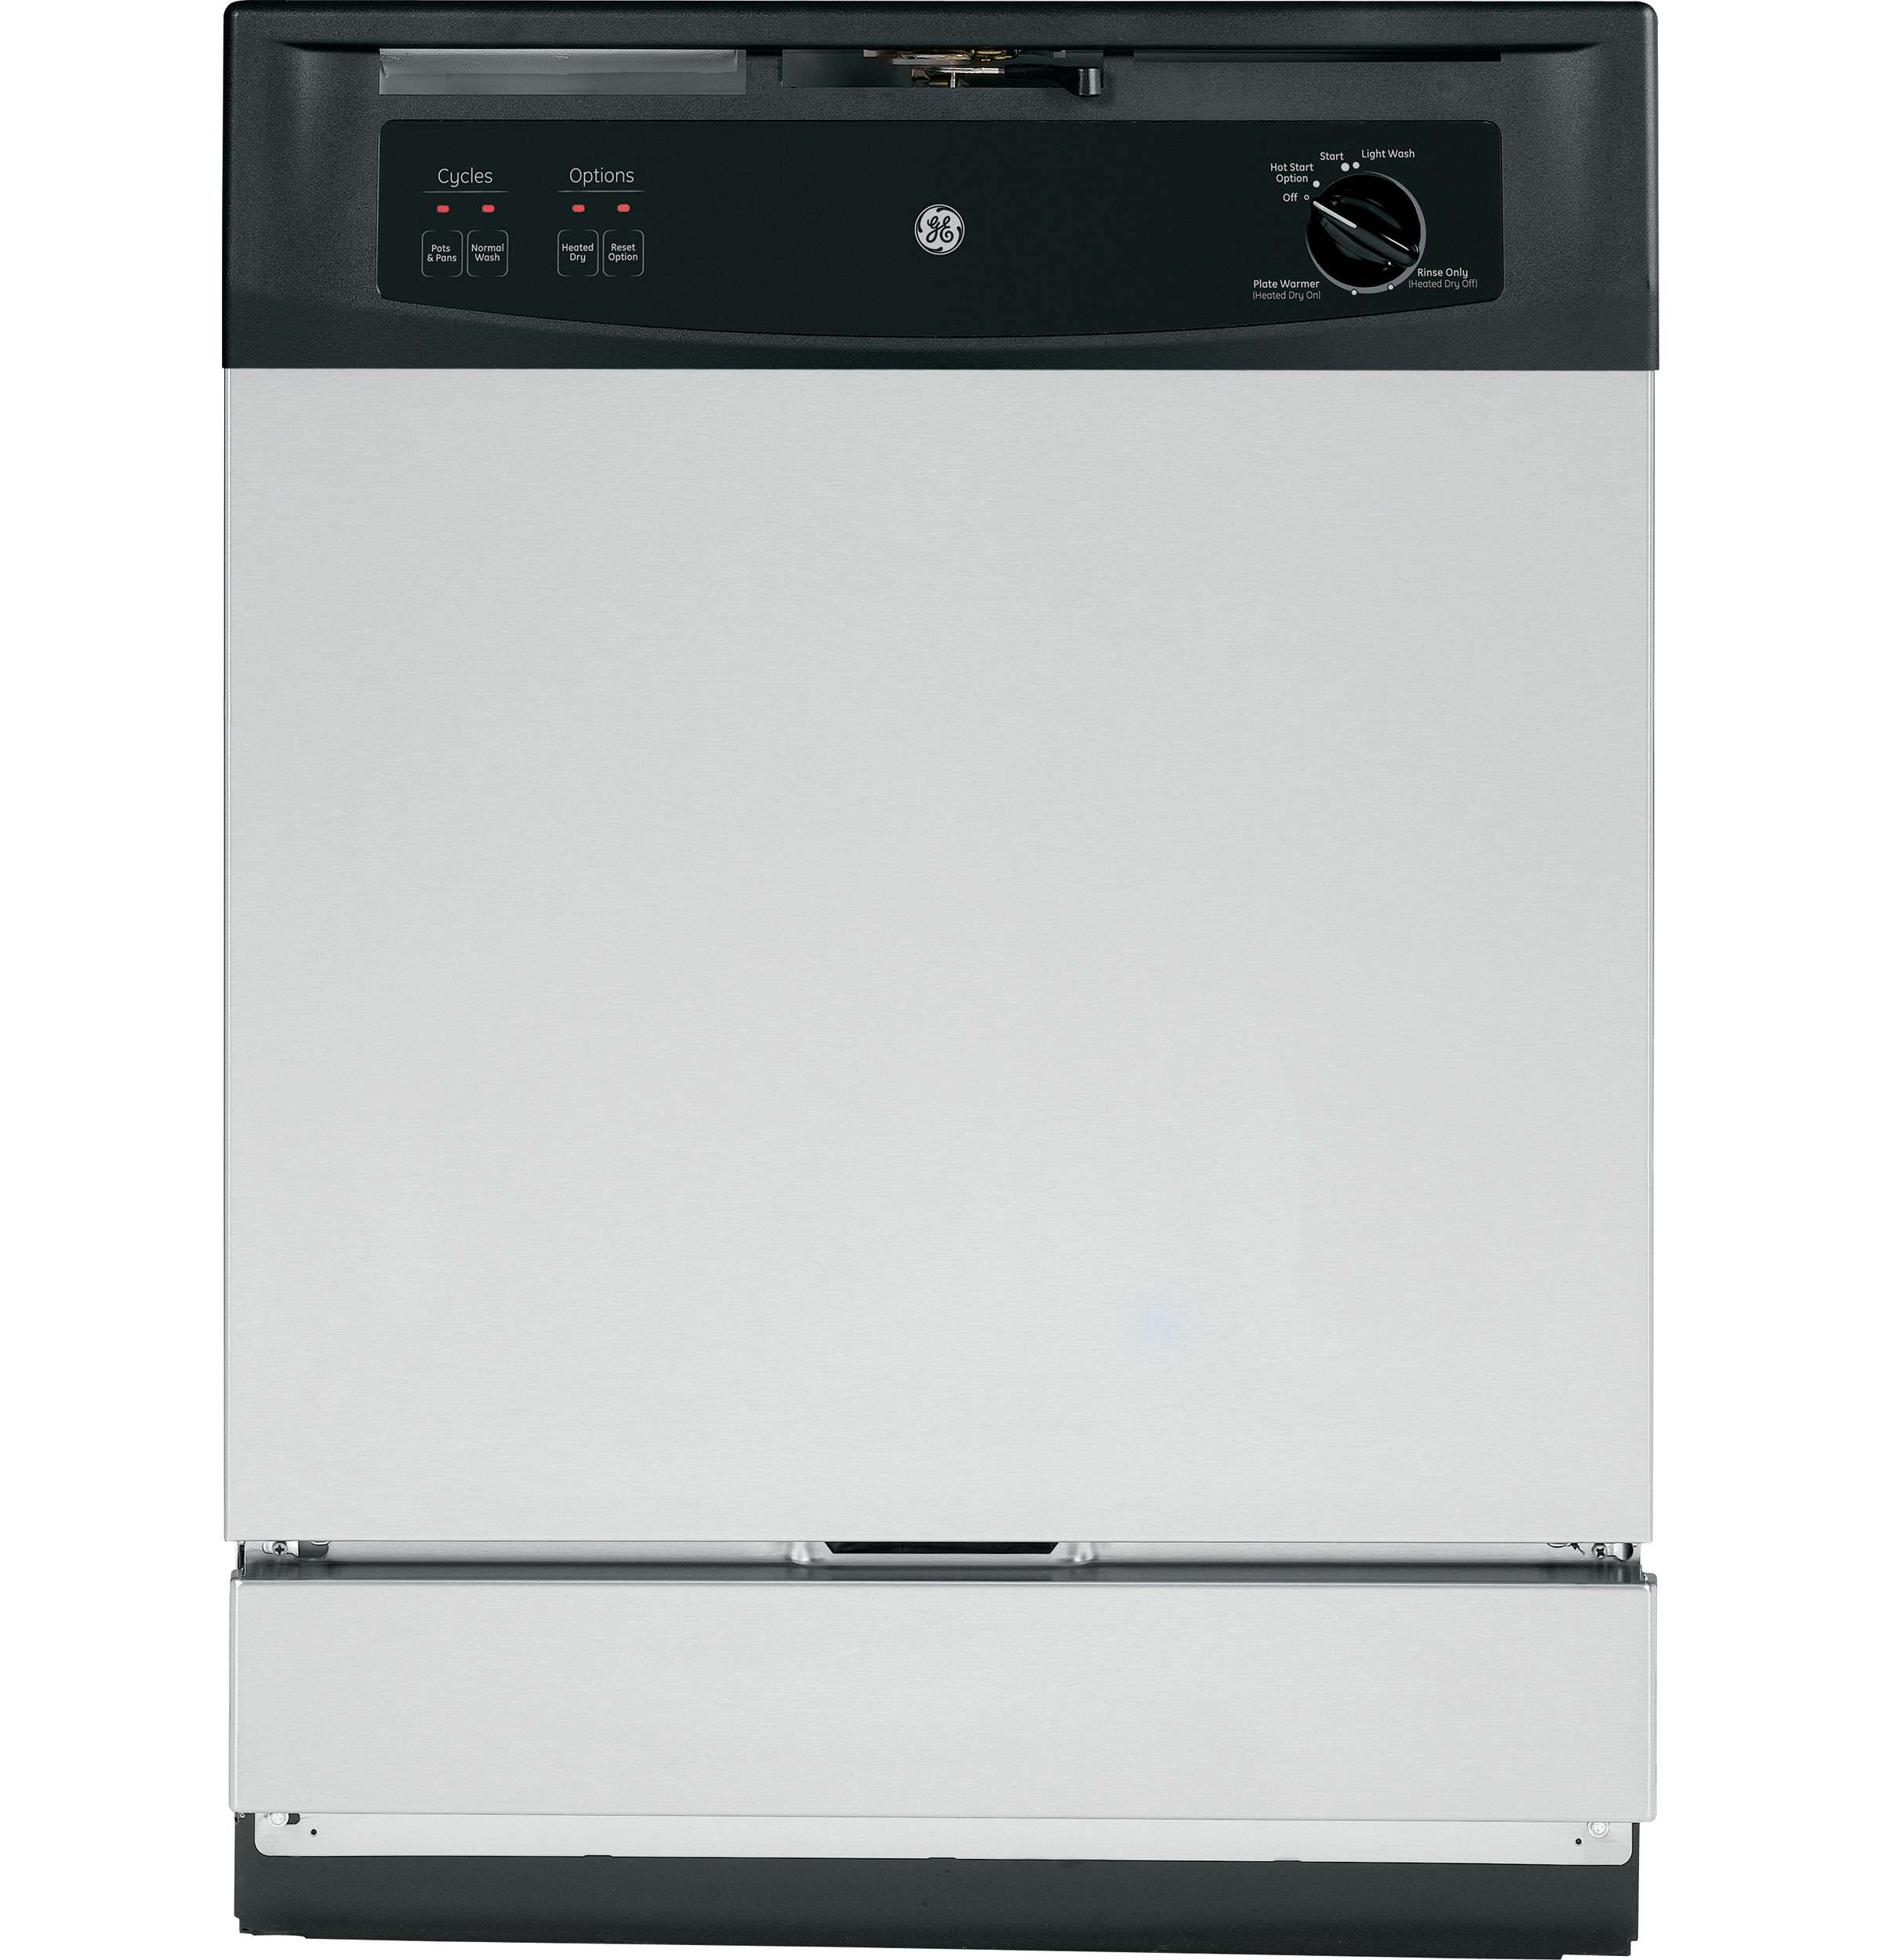 GE Spacemaker 24 In. Stainless Steel Built-In Dishwasher - GSM2260VSS Image 2